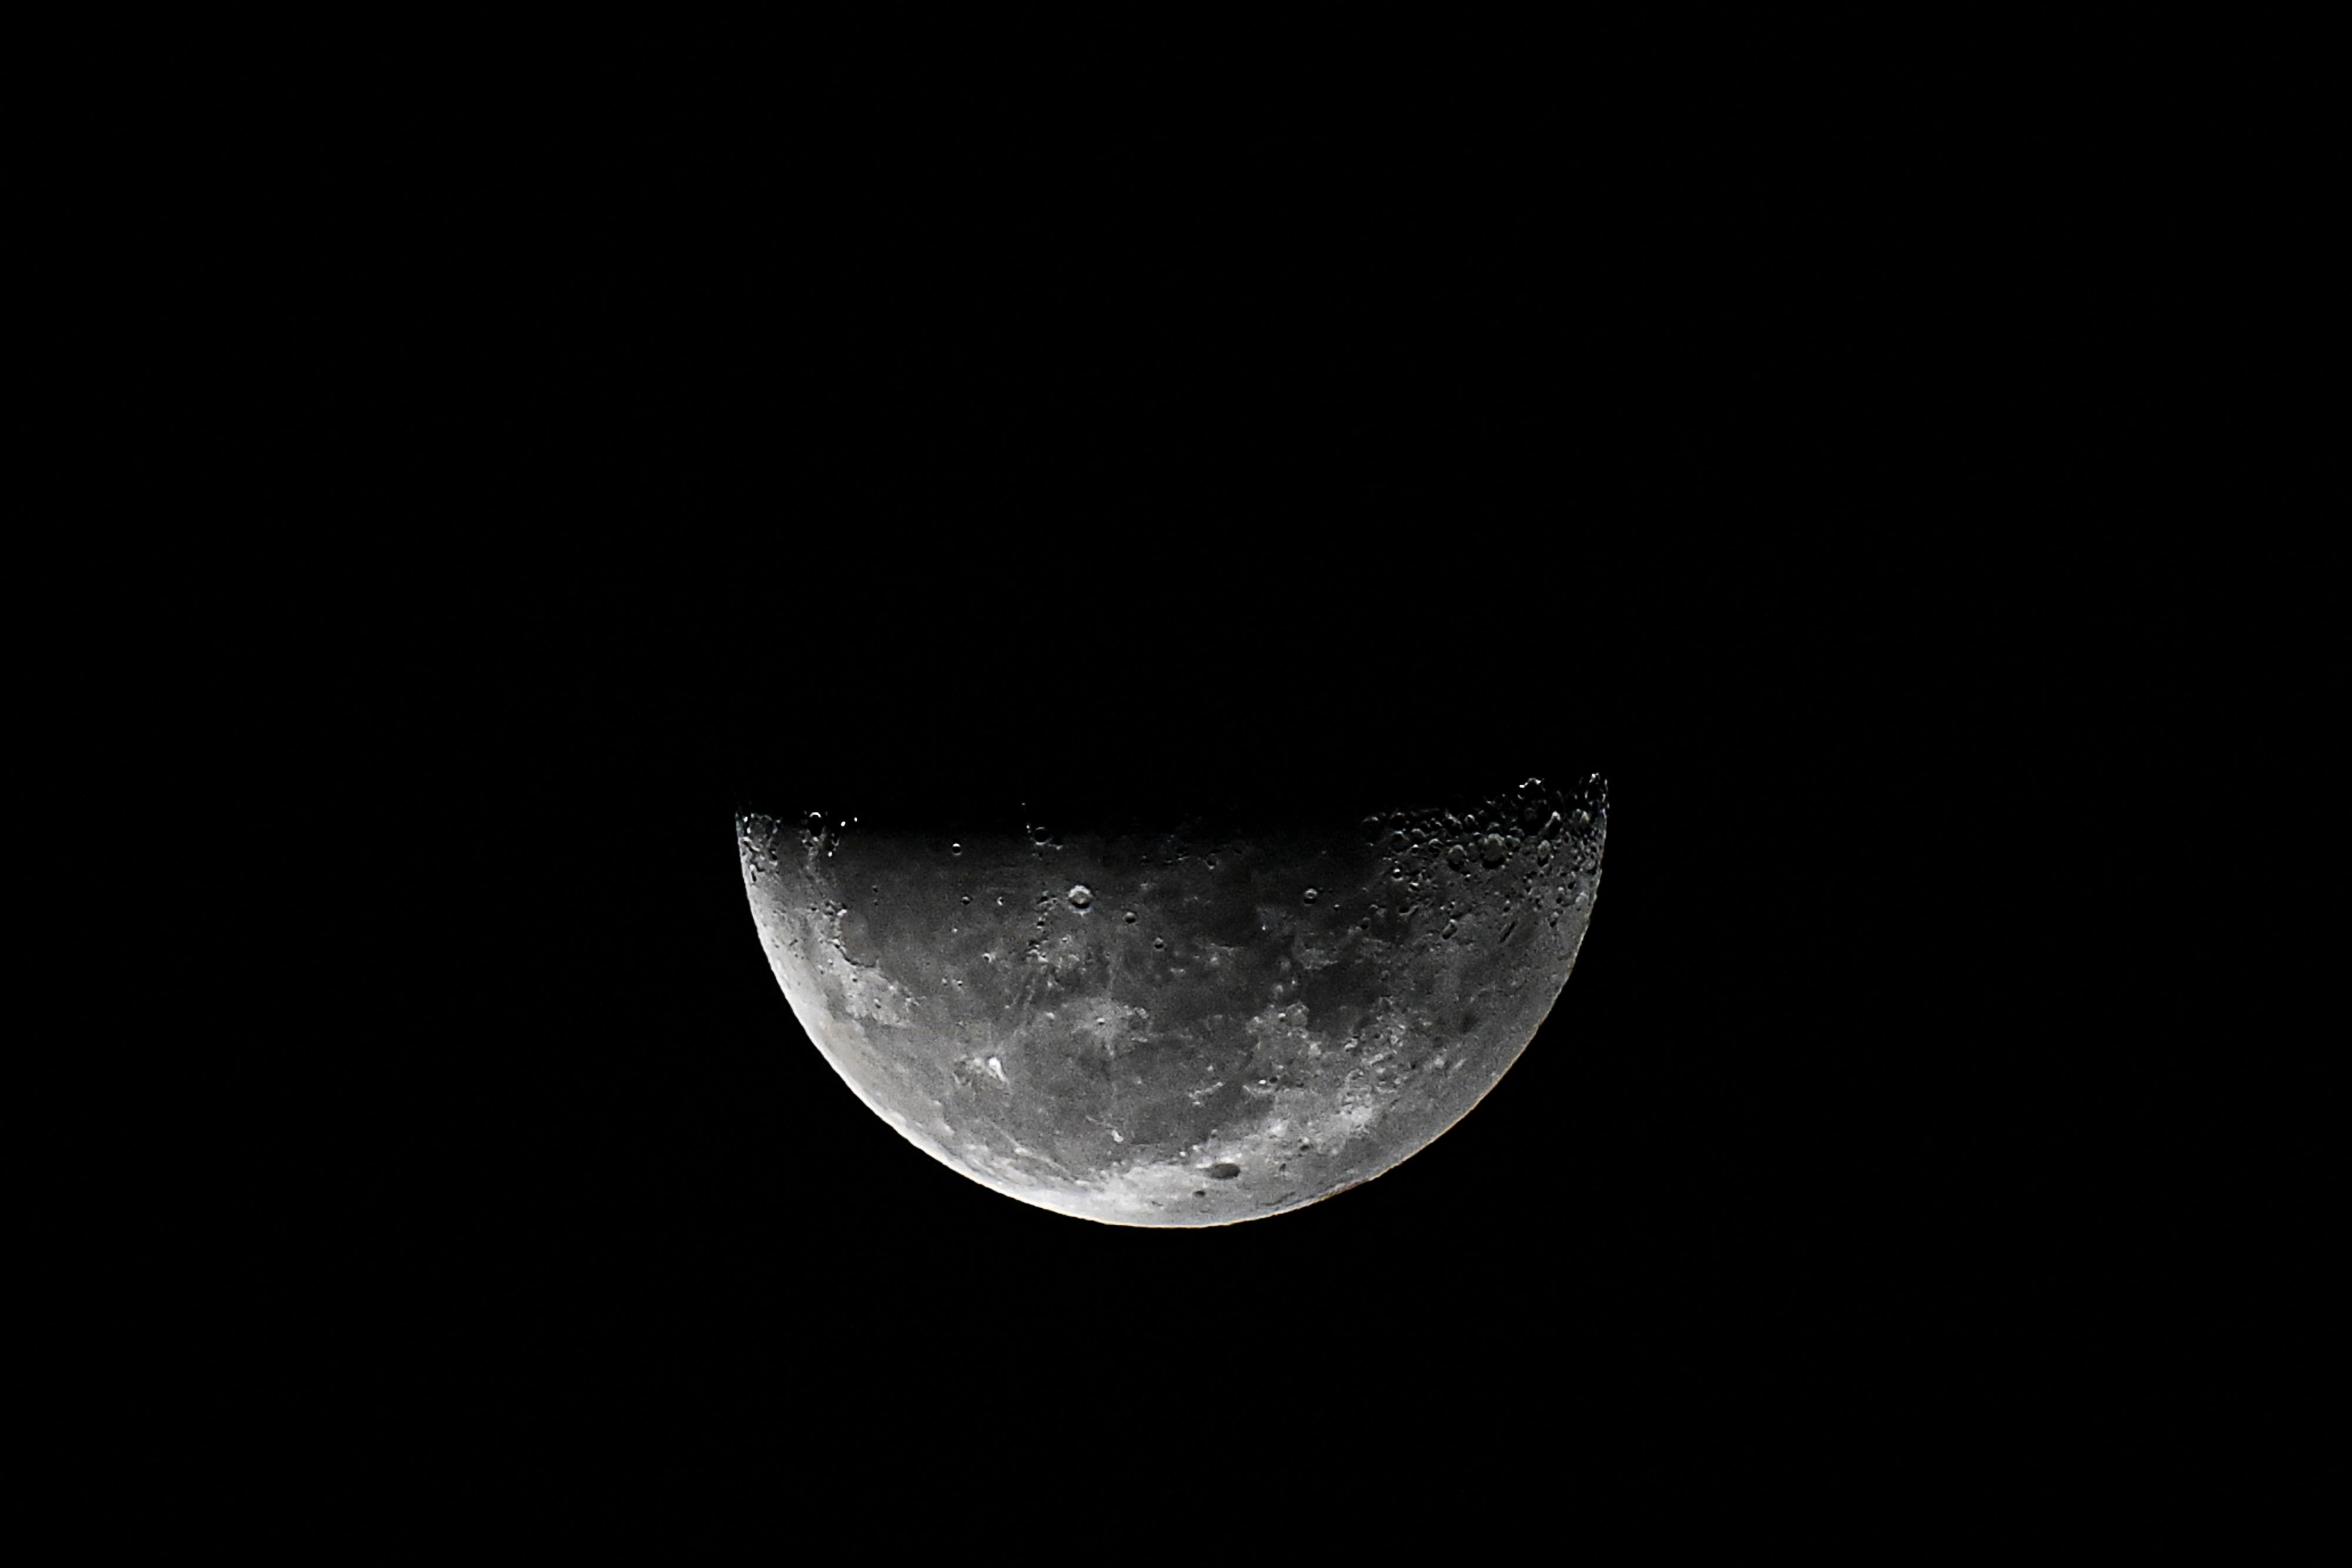 Pair of studies confirm there is water on the moon